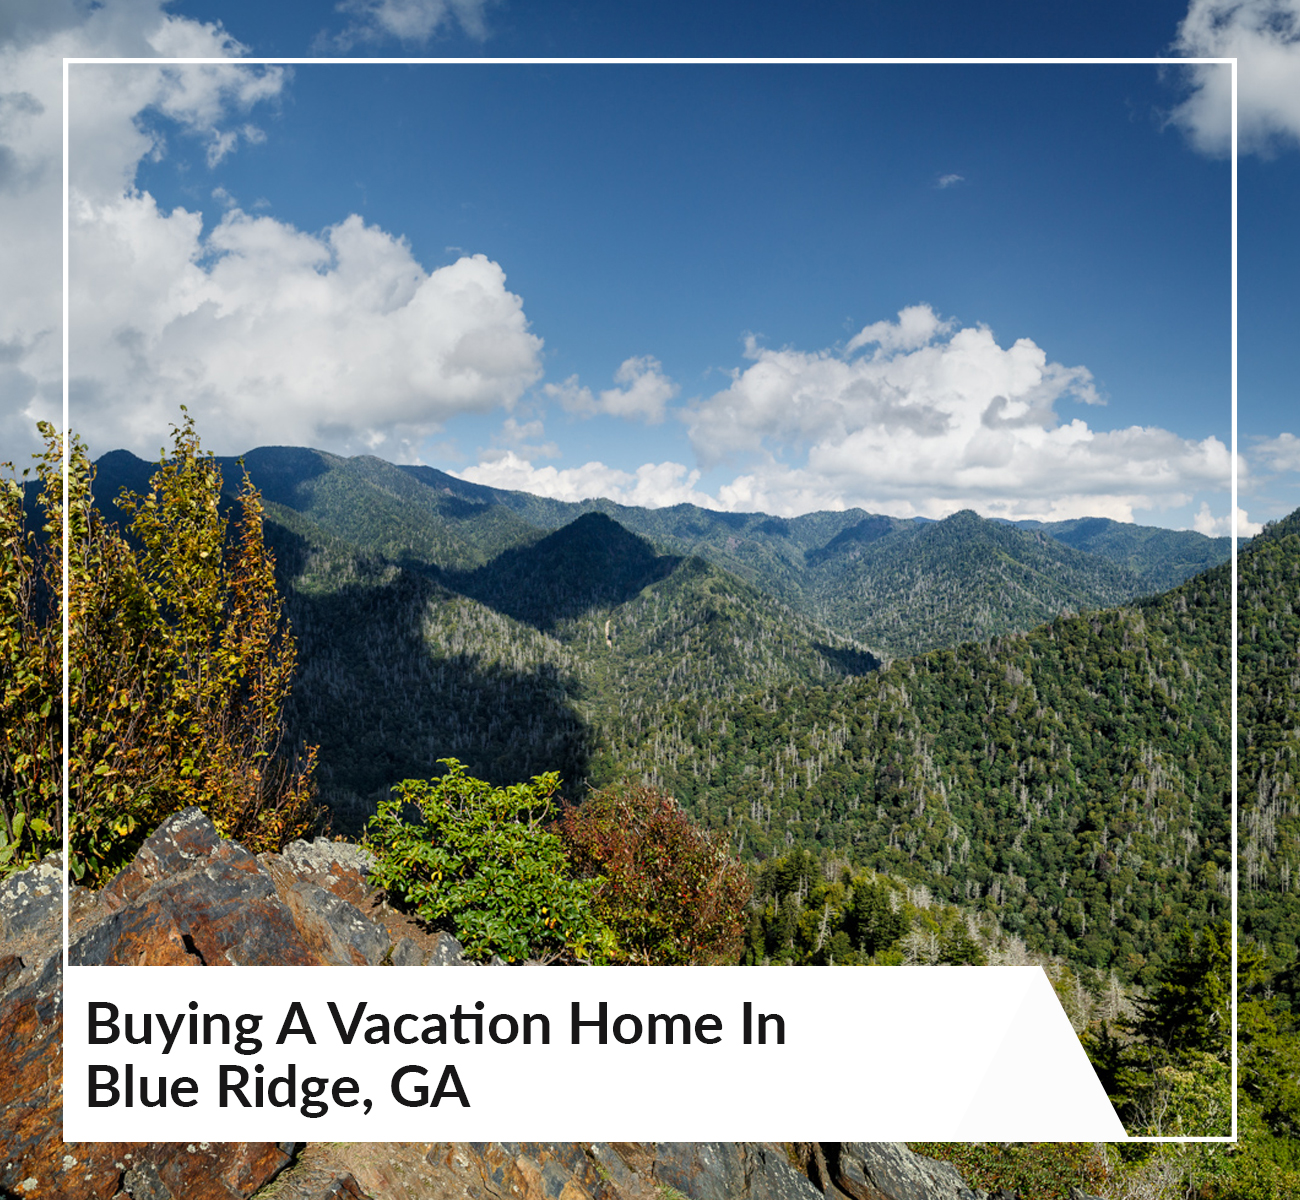 Buying a Vacation Home in Blue Ridge, GA